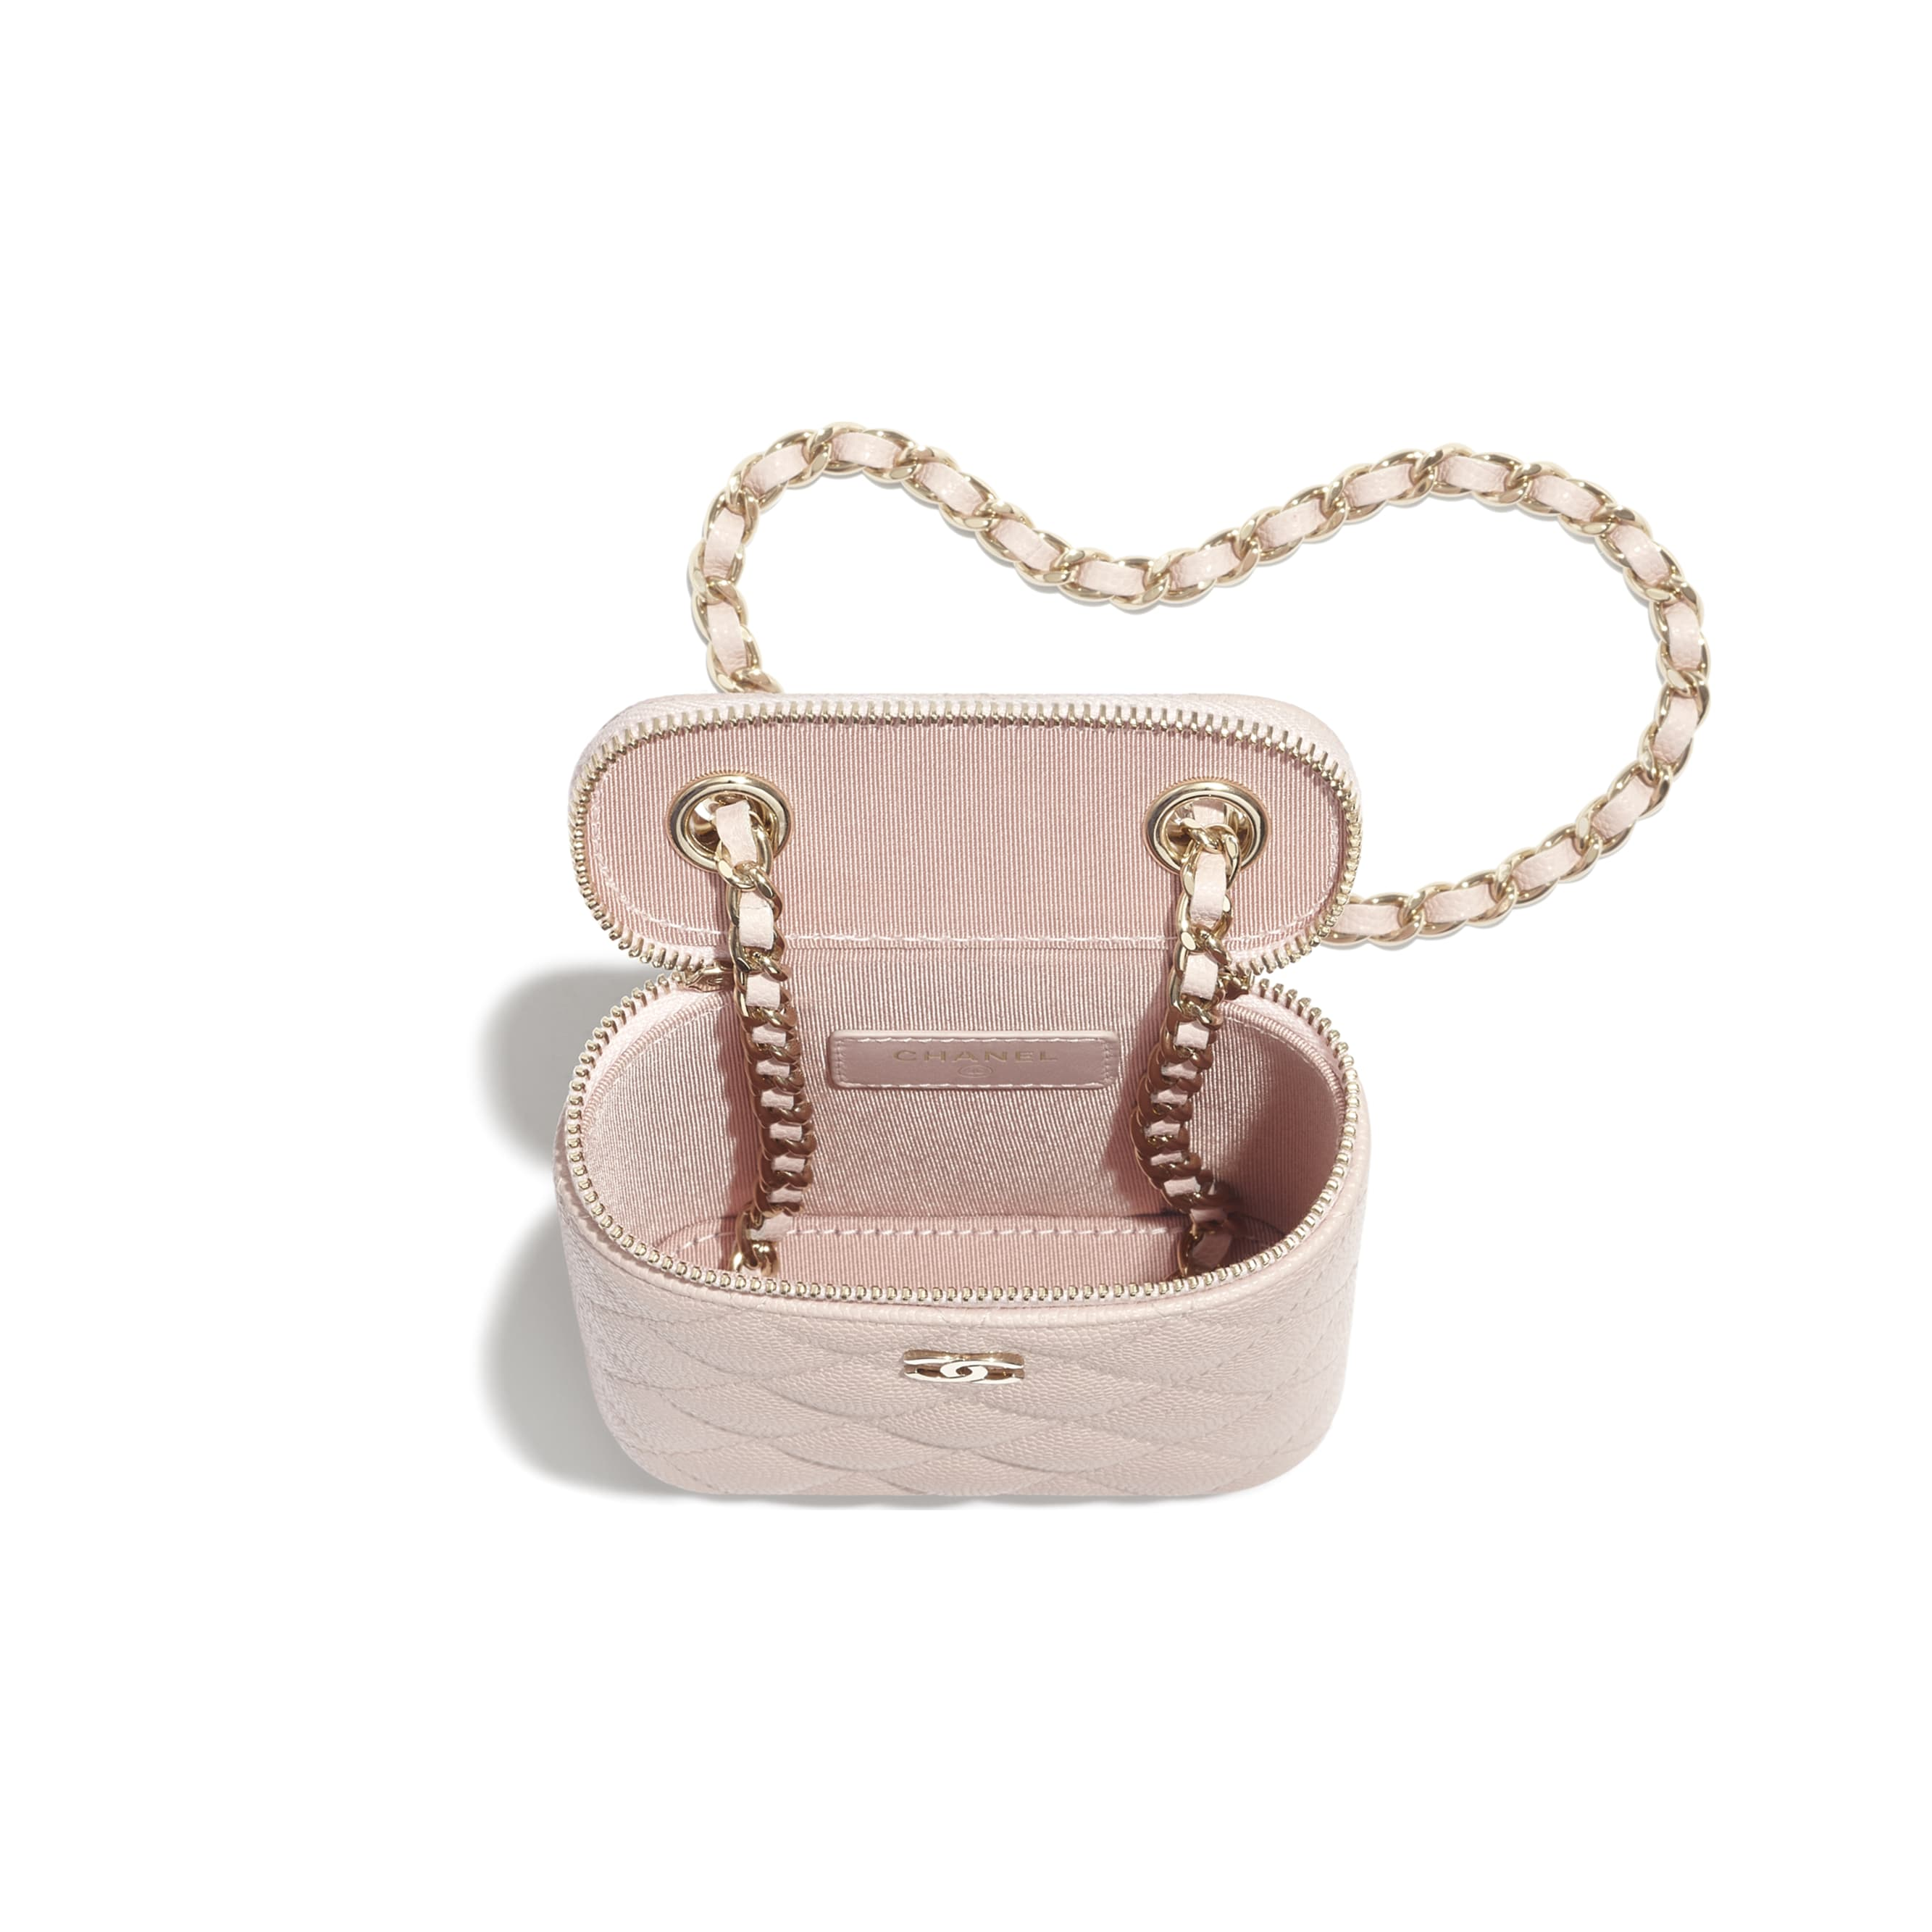 Small Vanity with Classic Chain - Pale Pink - Grained Shiny Calfskin & Gold-Tone Metal - CHANEL - Other view - see standard sized version